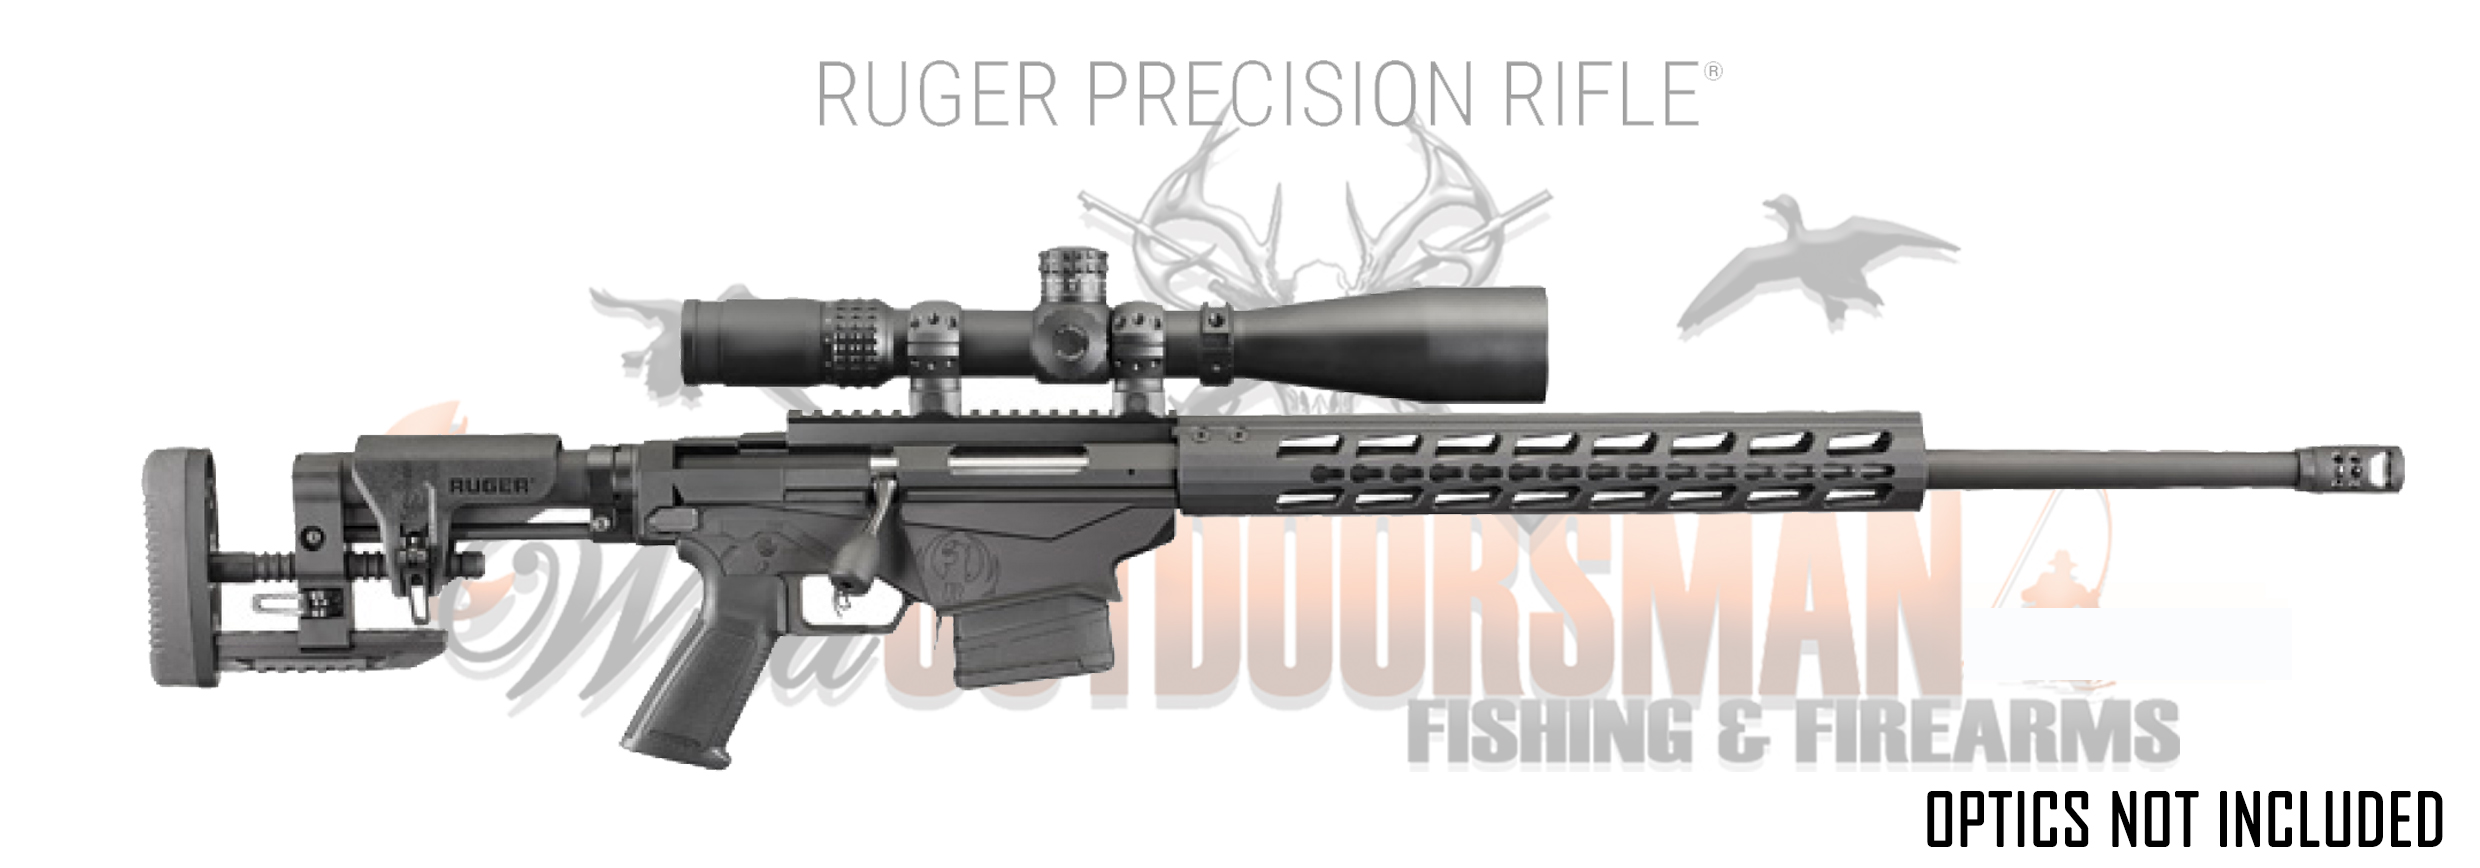 NEW Model Ruger Precision Rifle 308